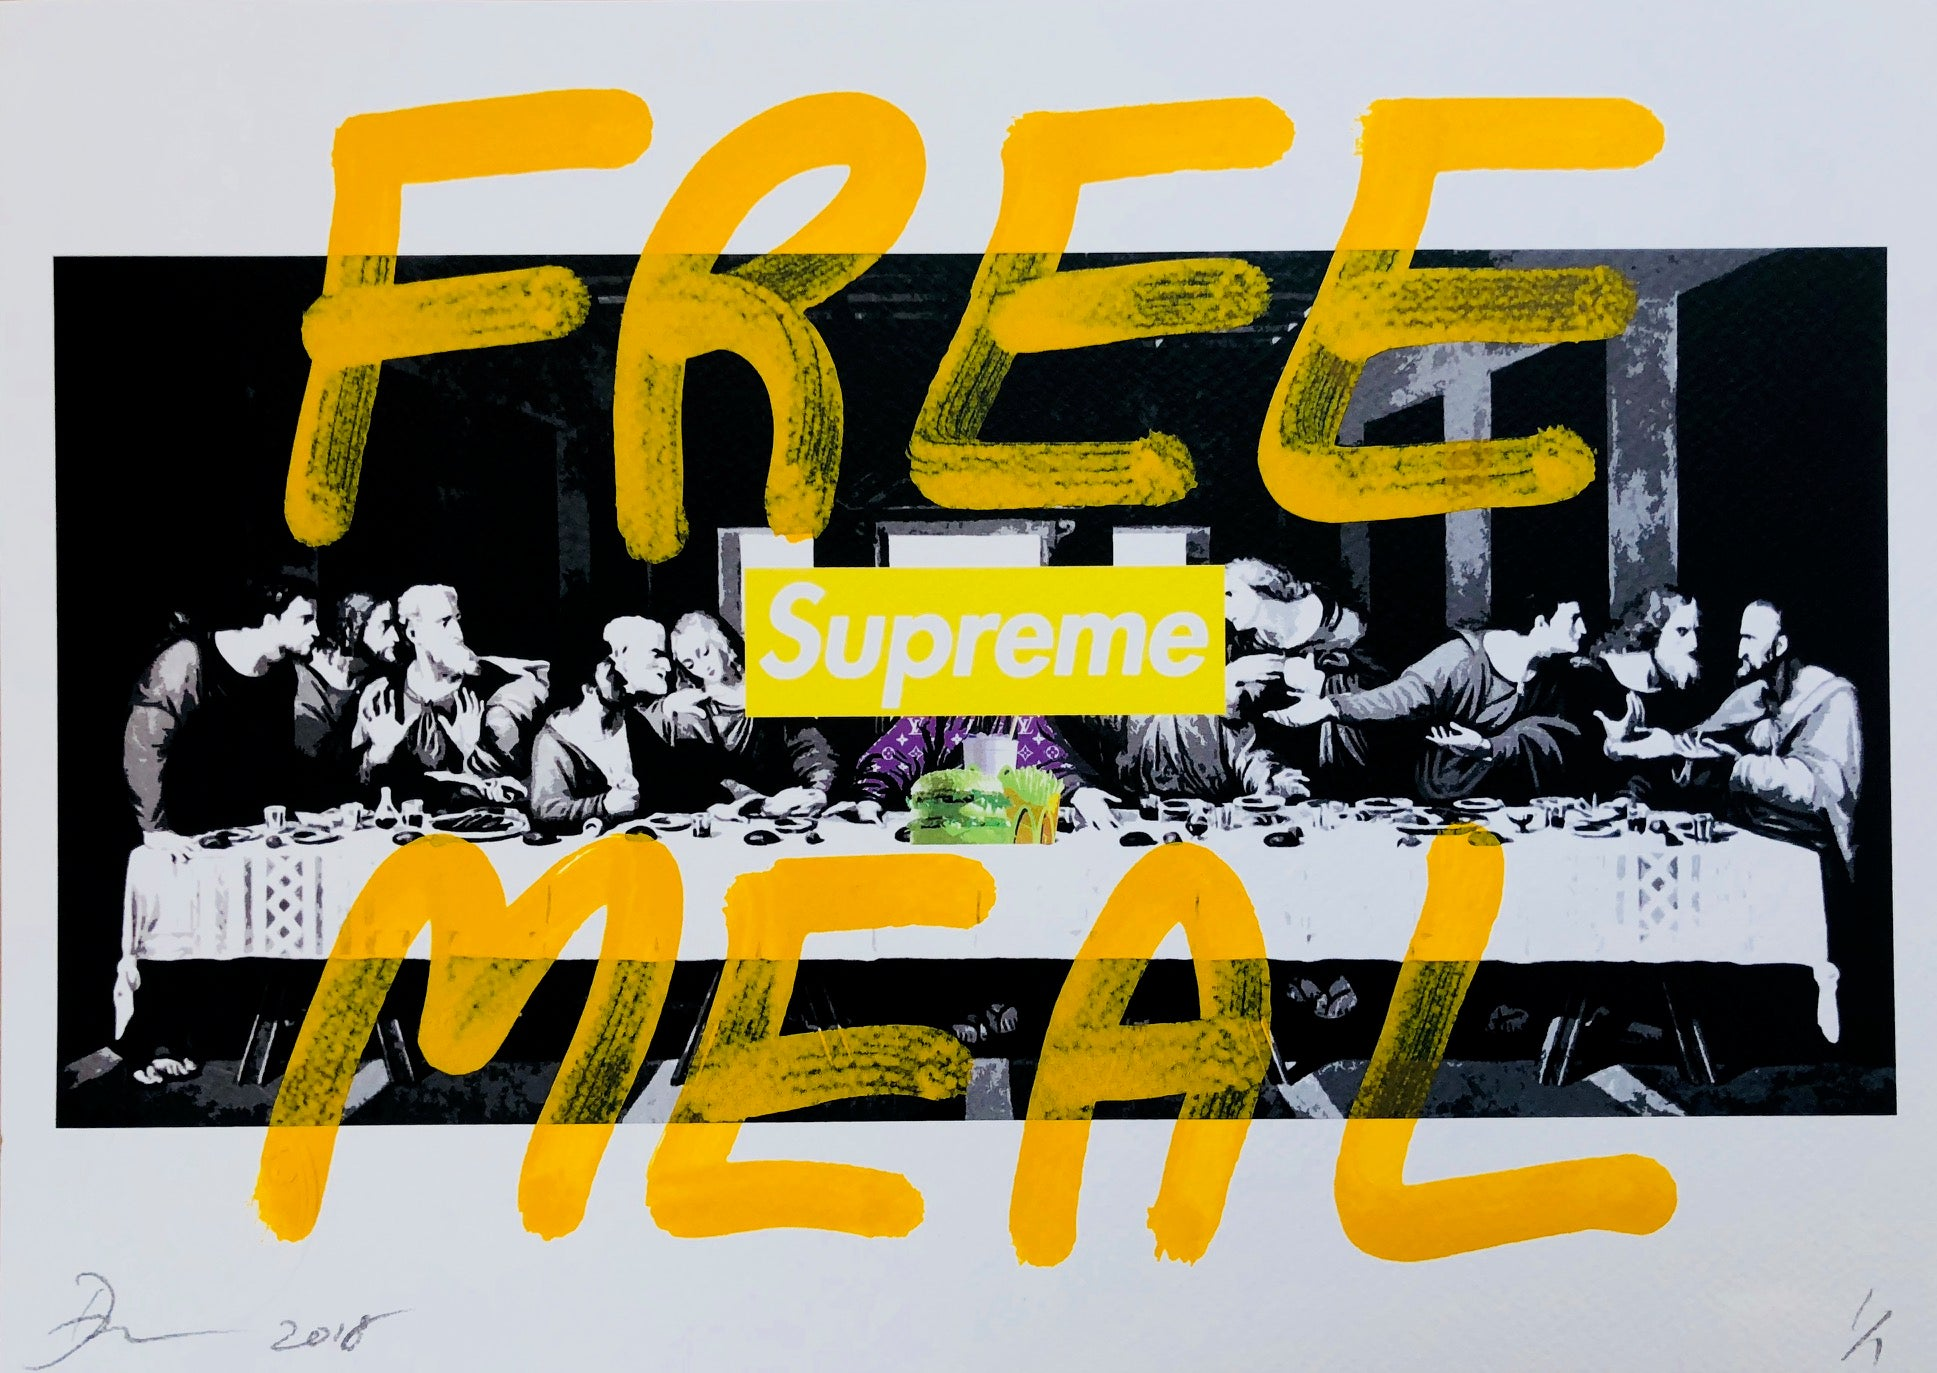 Free Meal 29x21cm (Edition of 1)